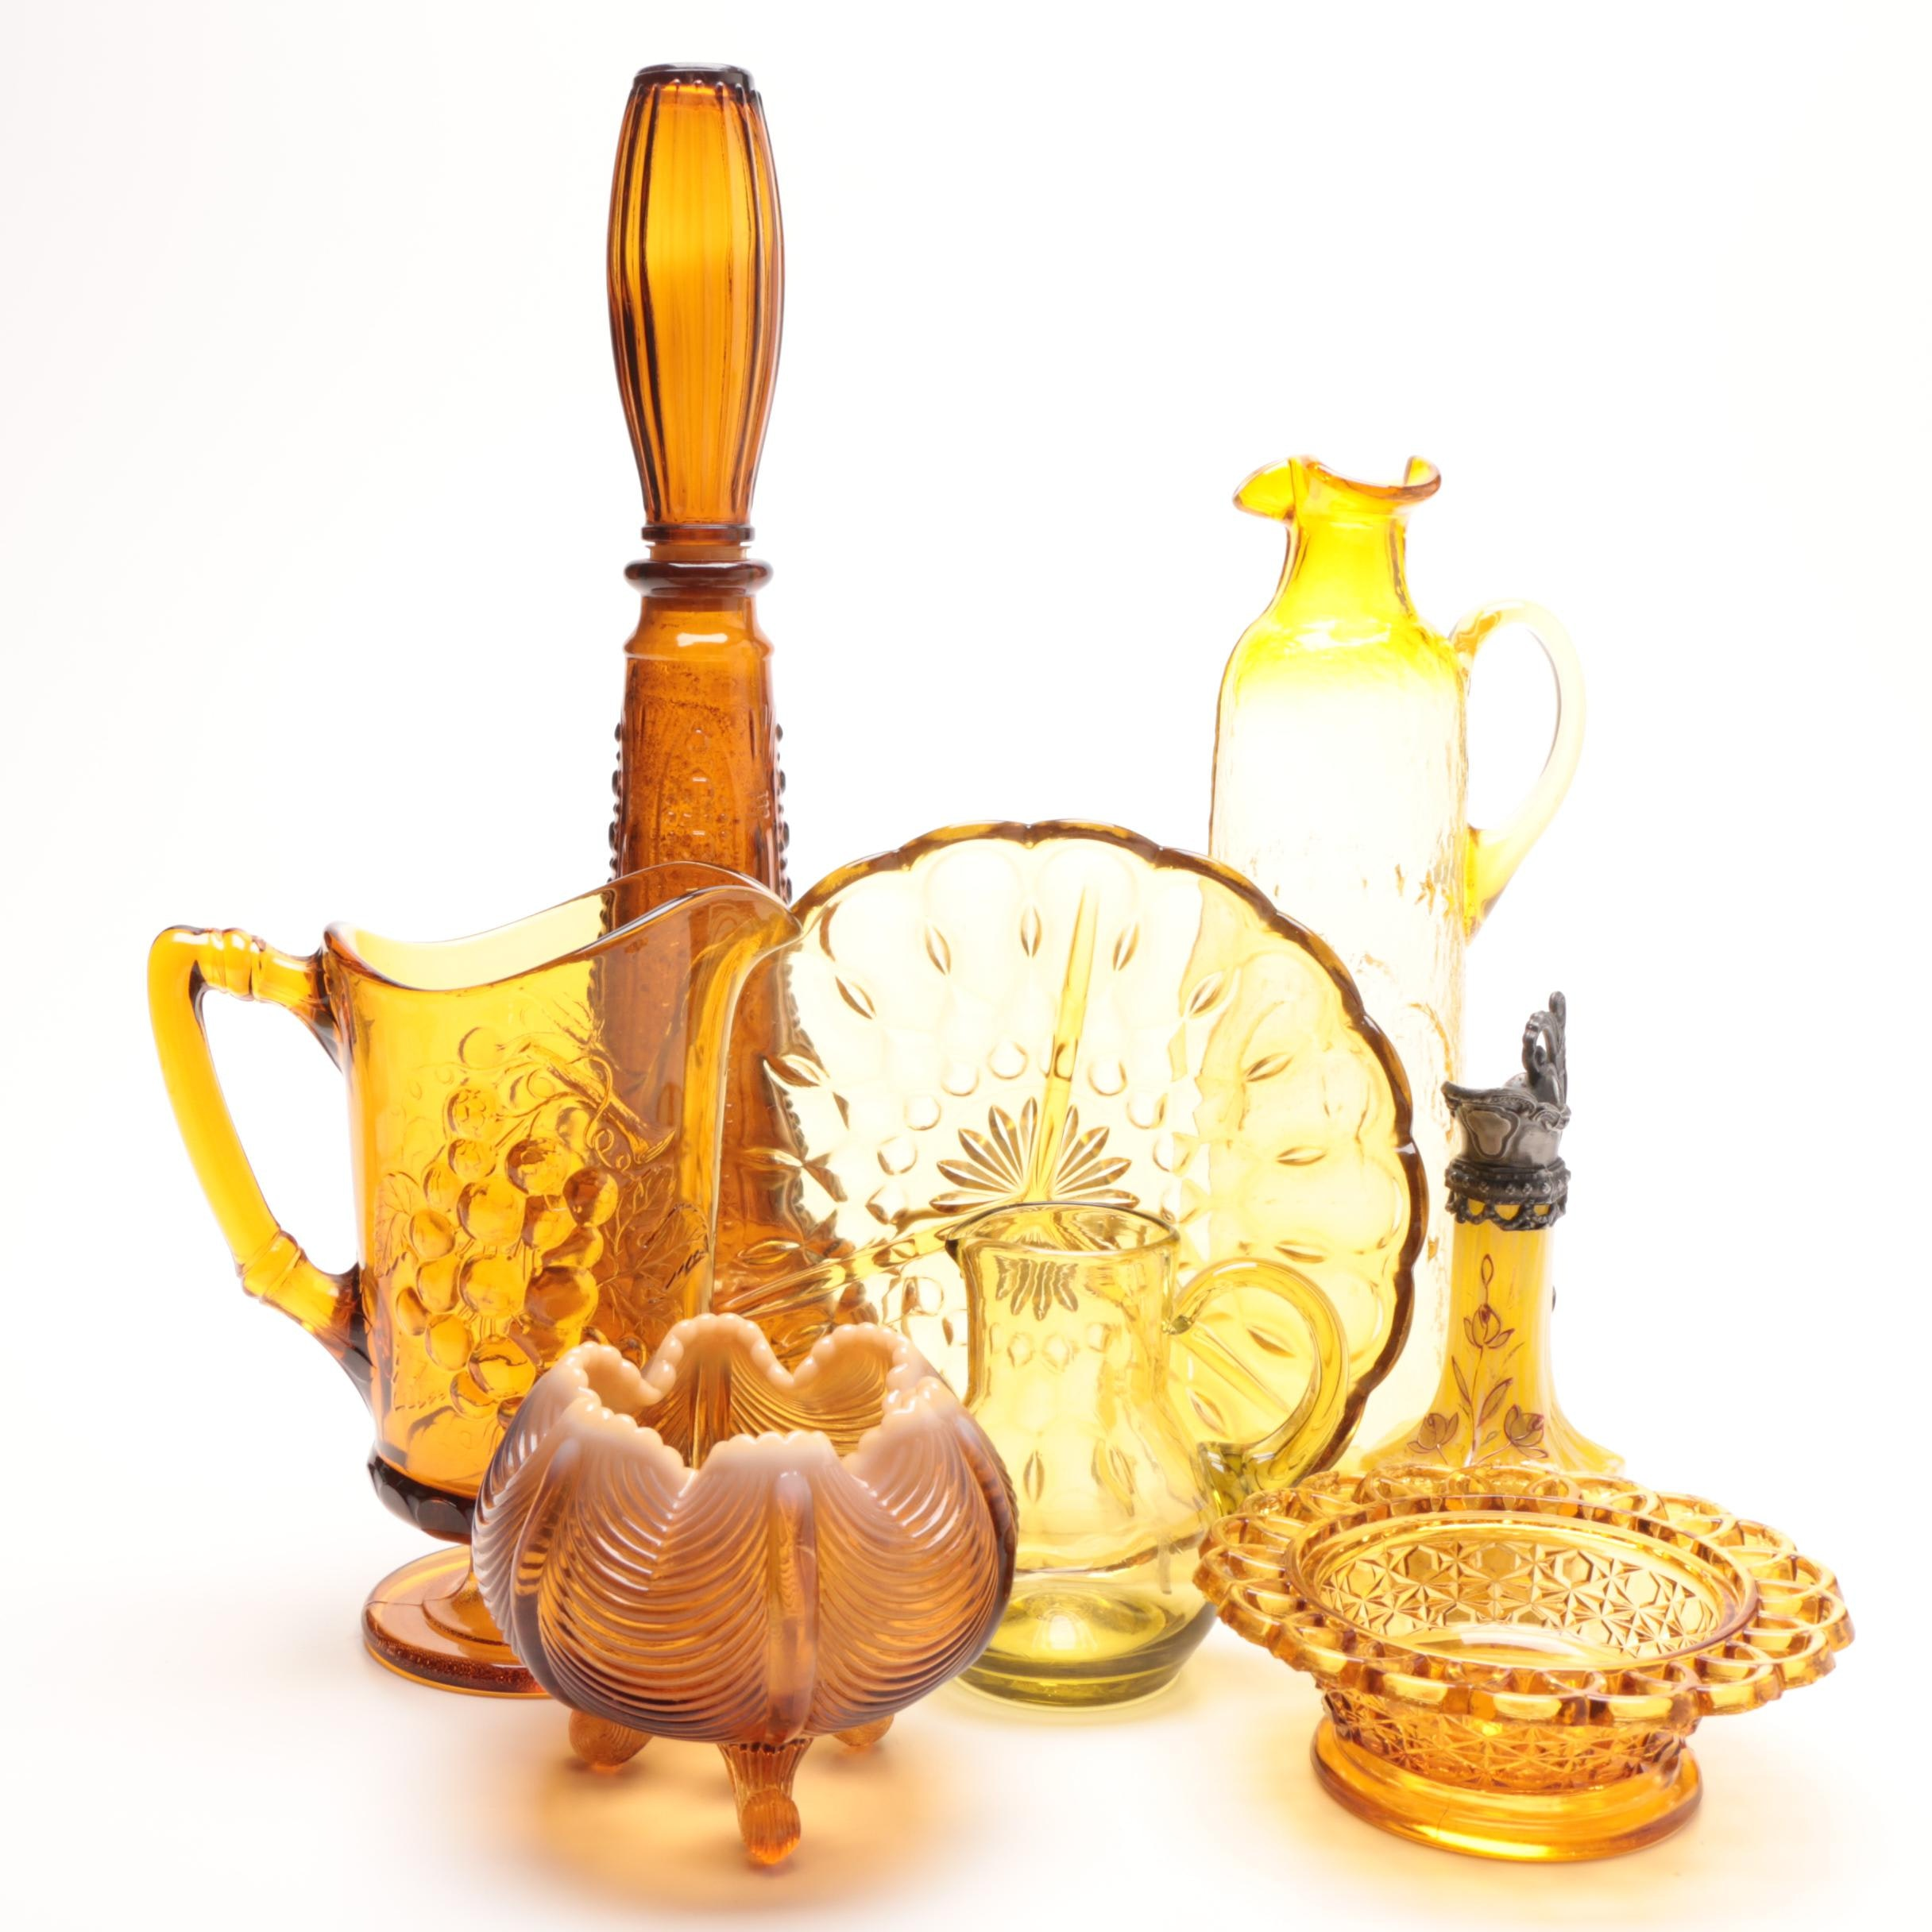 Group of Amber Glass Decor Items